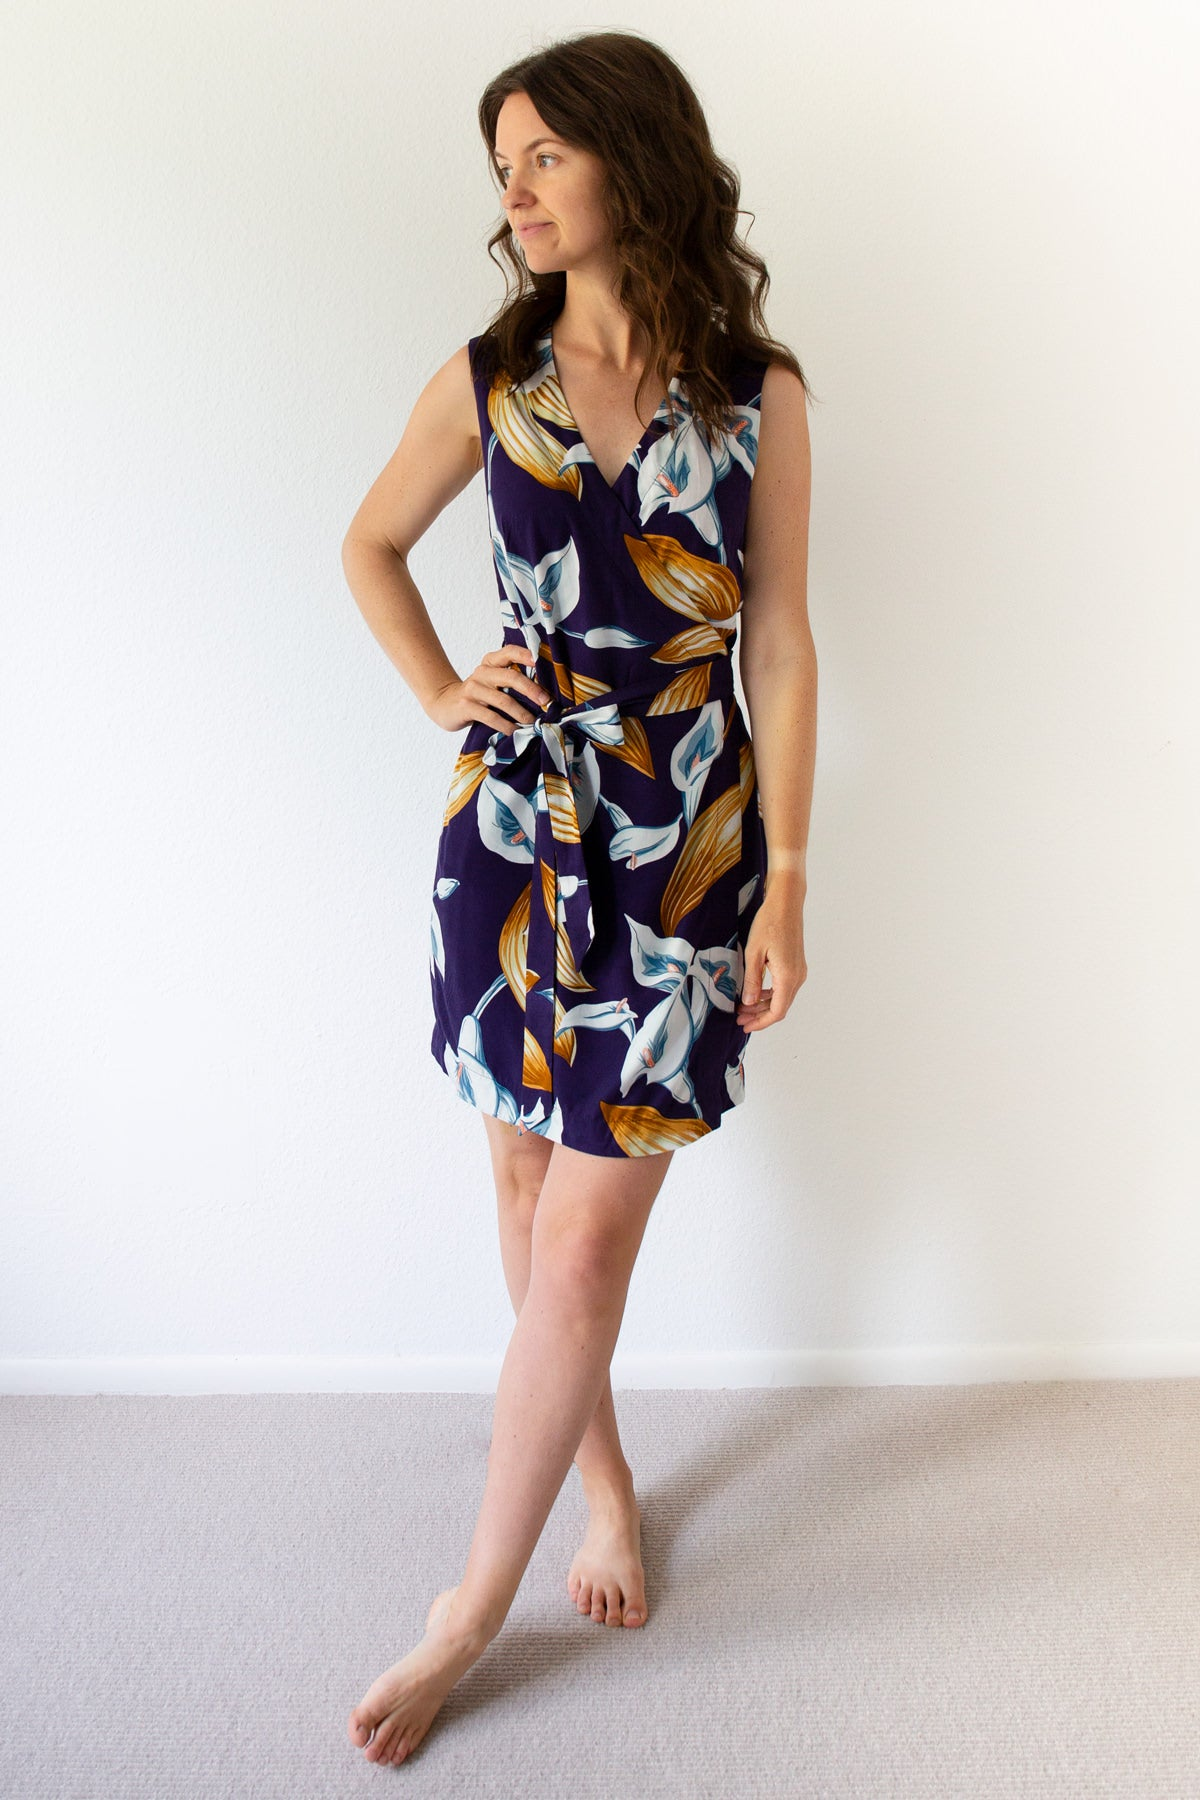 How to Shorten the Highlands Wrap Dress by Allie Olson